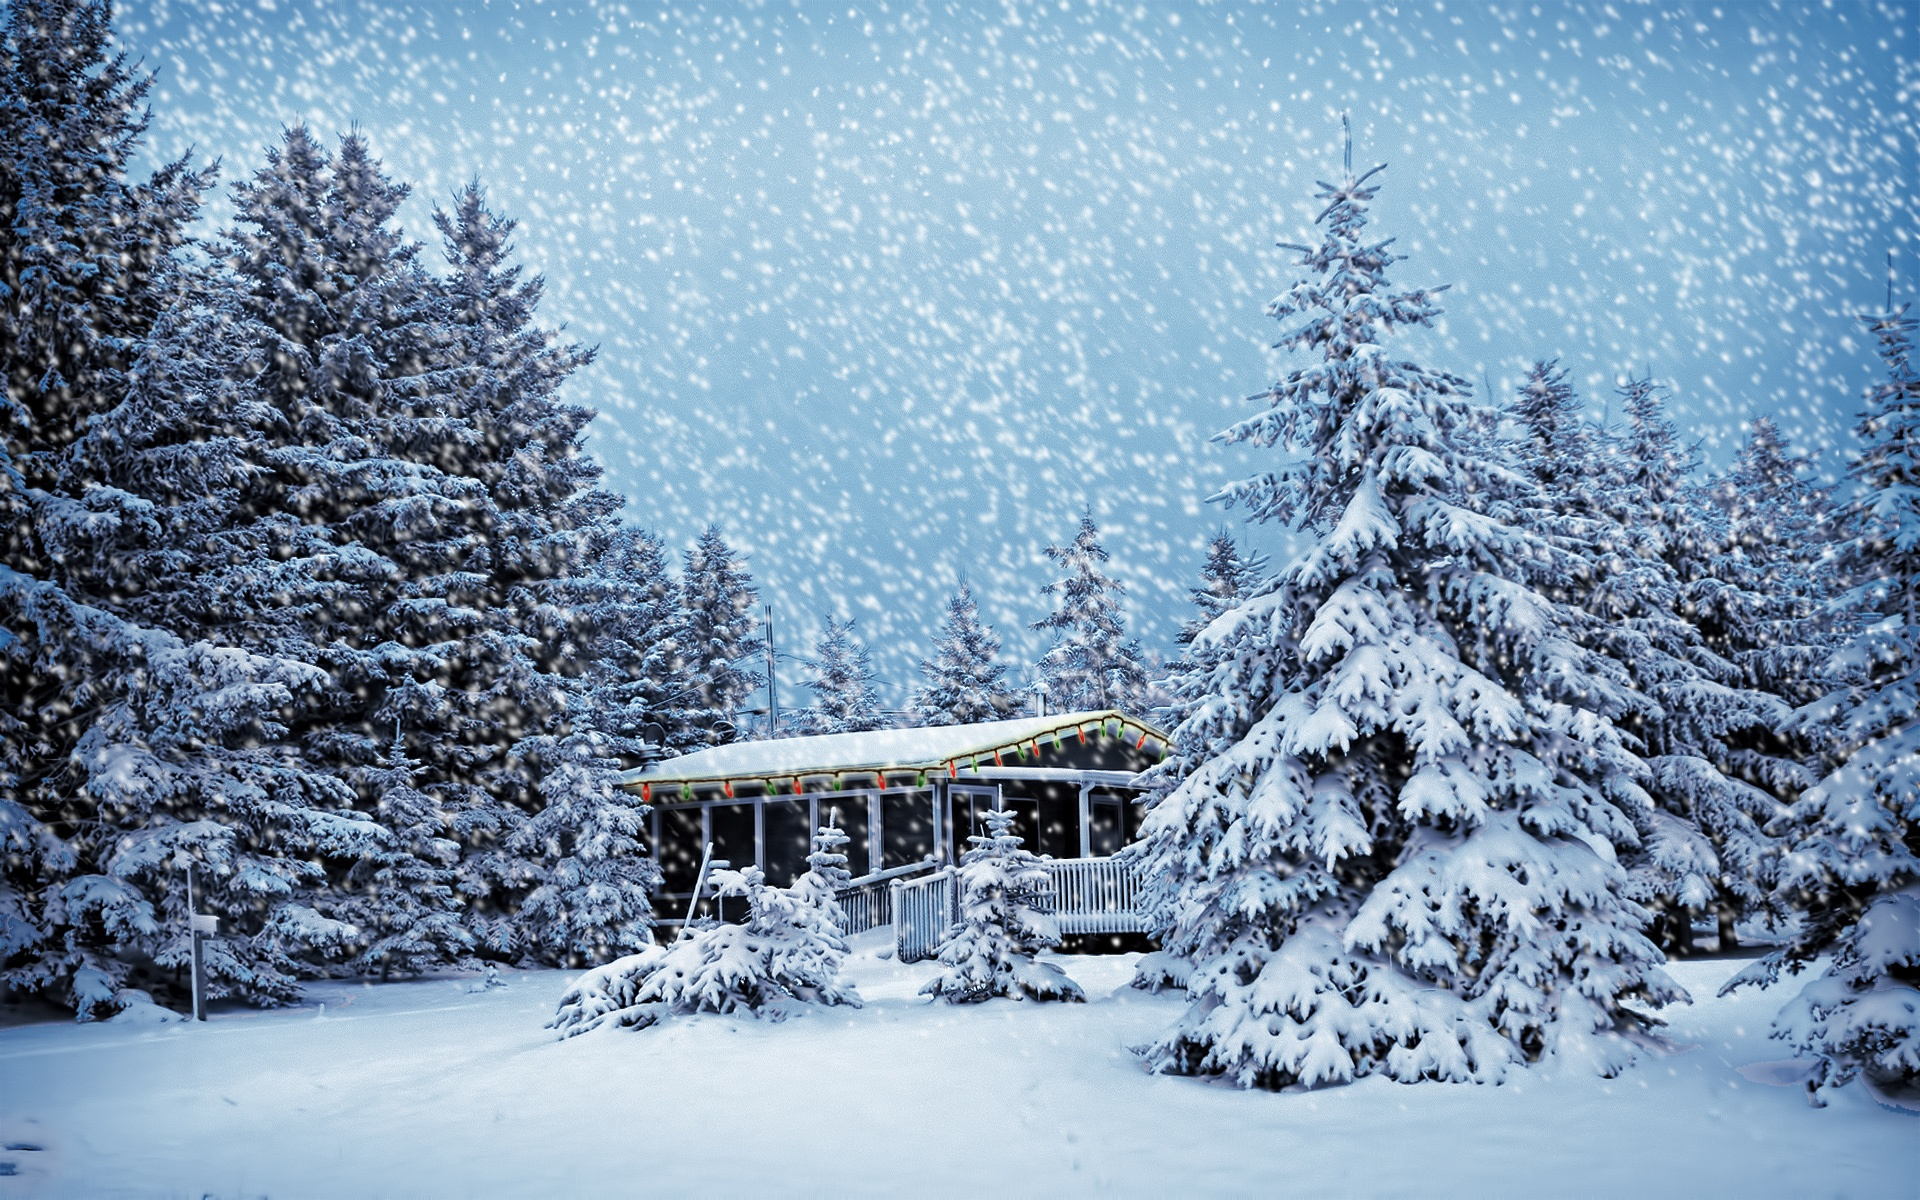 wallpaper house in the winter forest 1920x1200 hd picture image